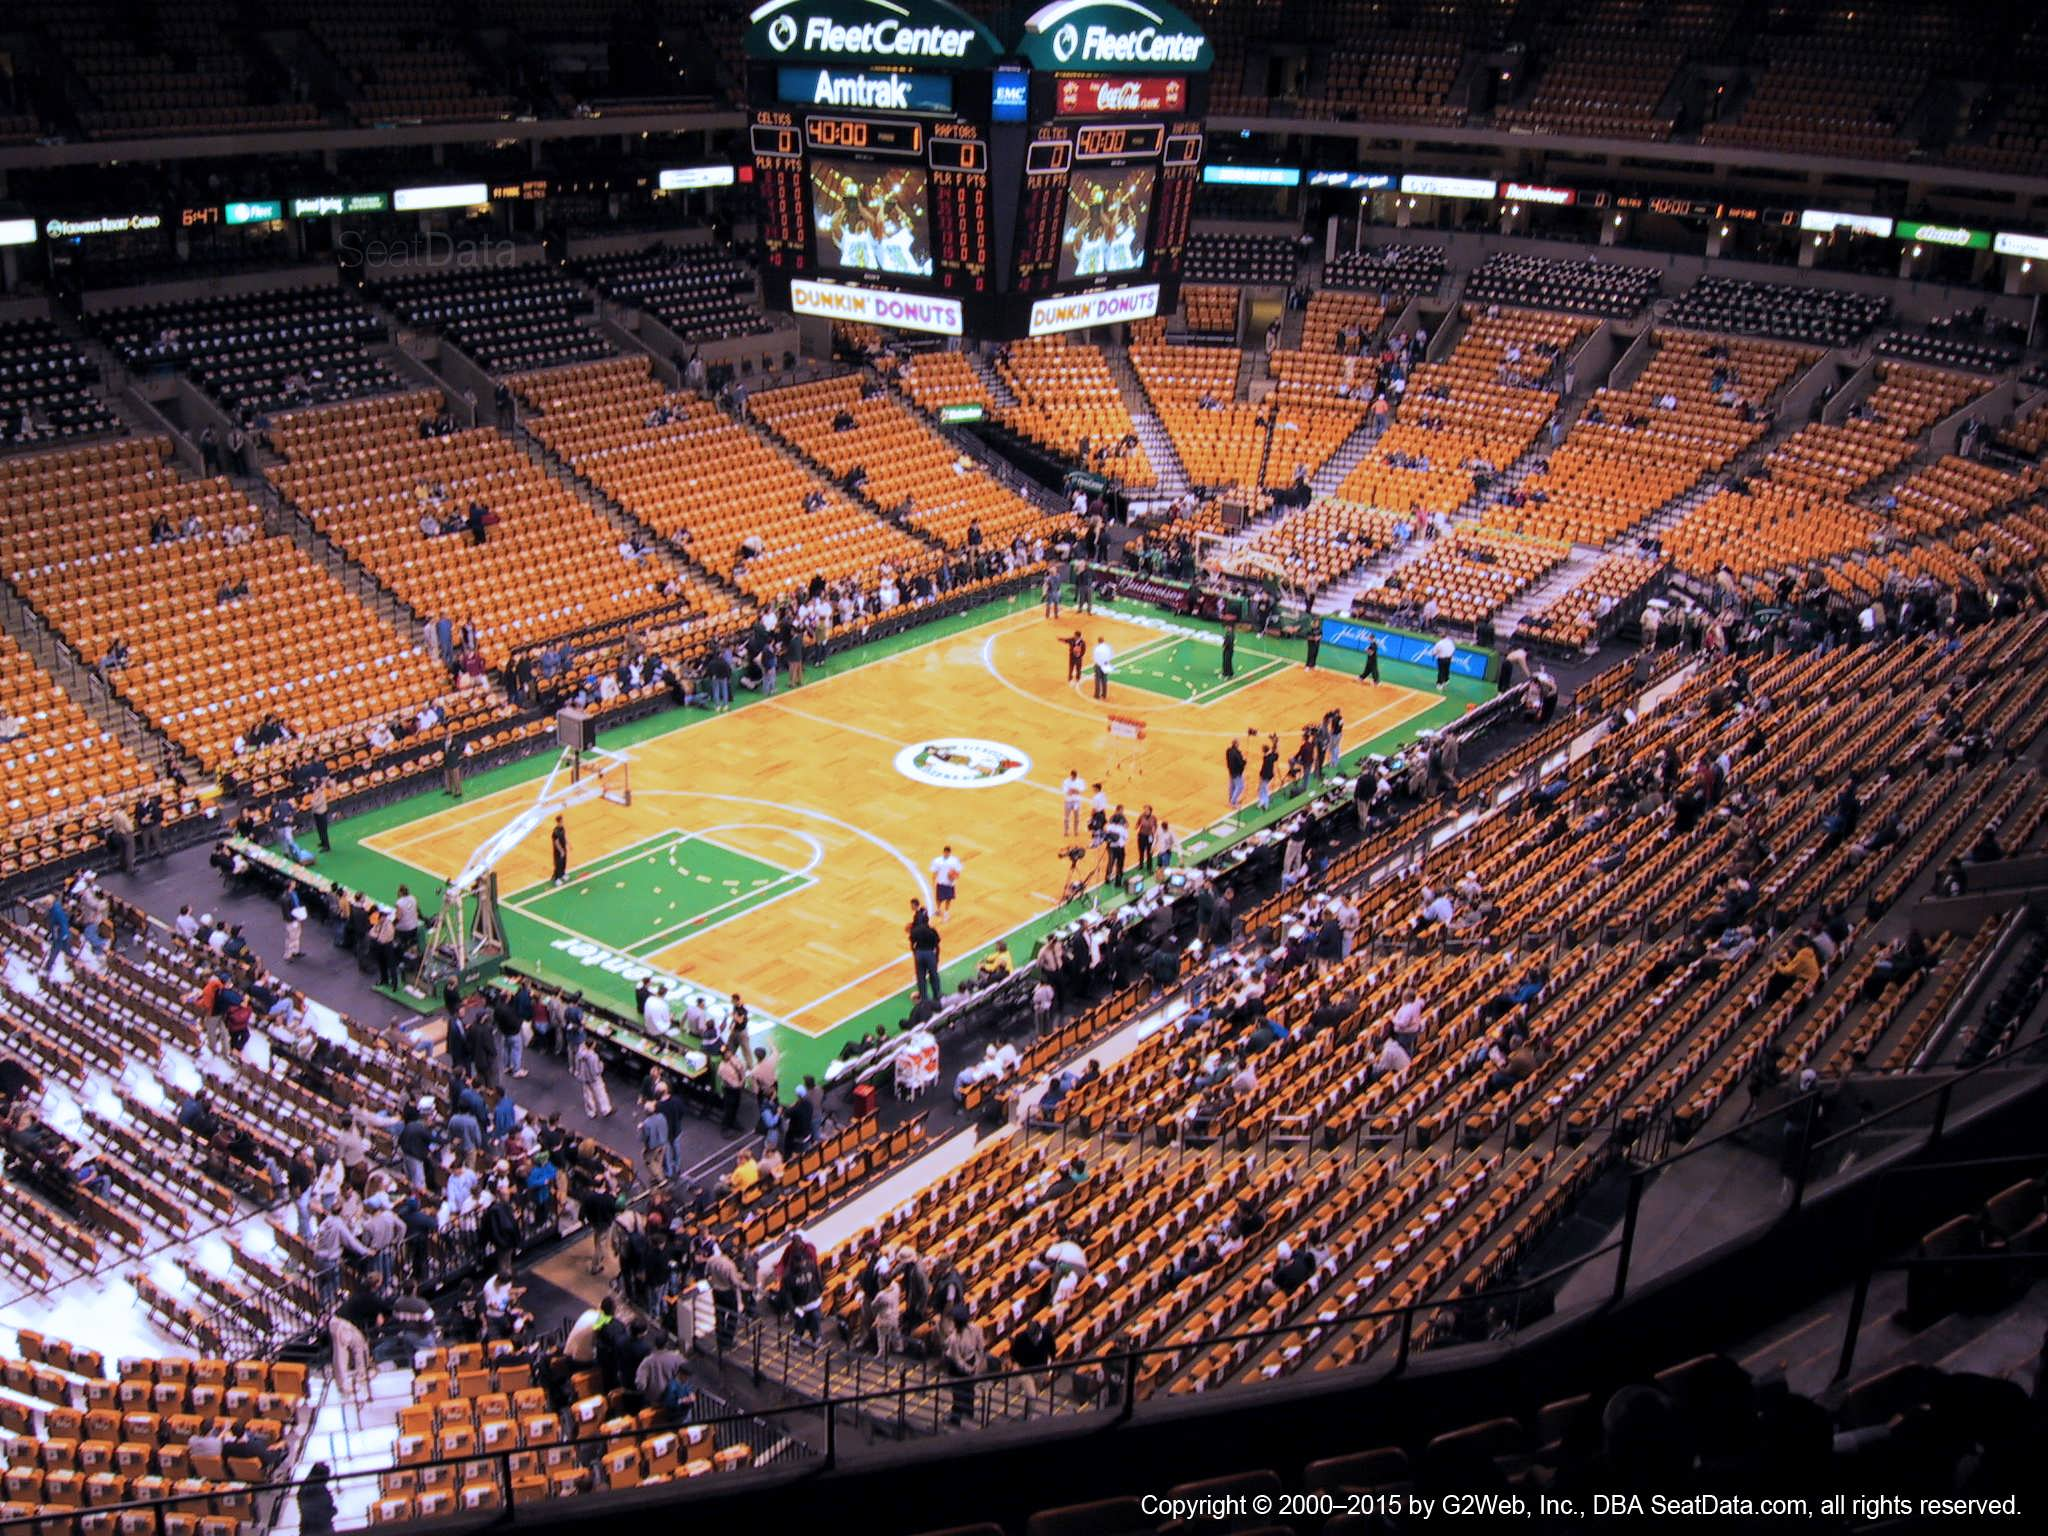 Td Garden Section 305 Boston Celtics